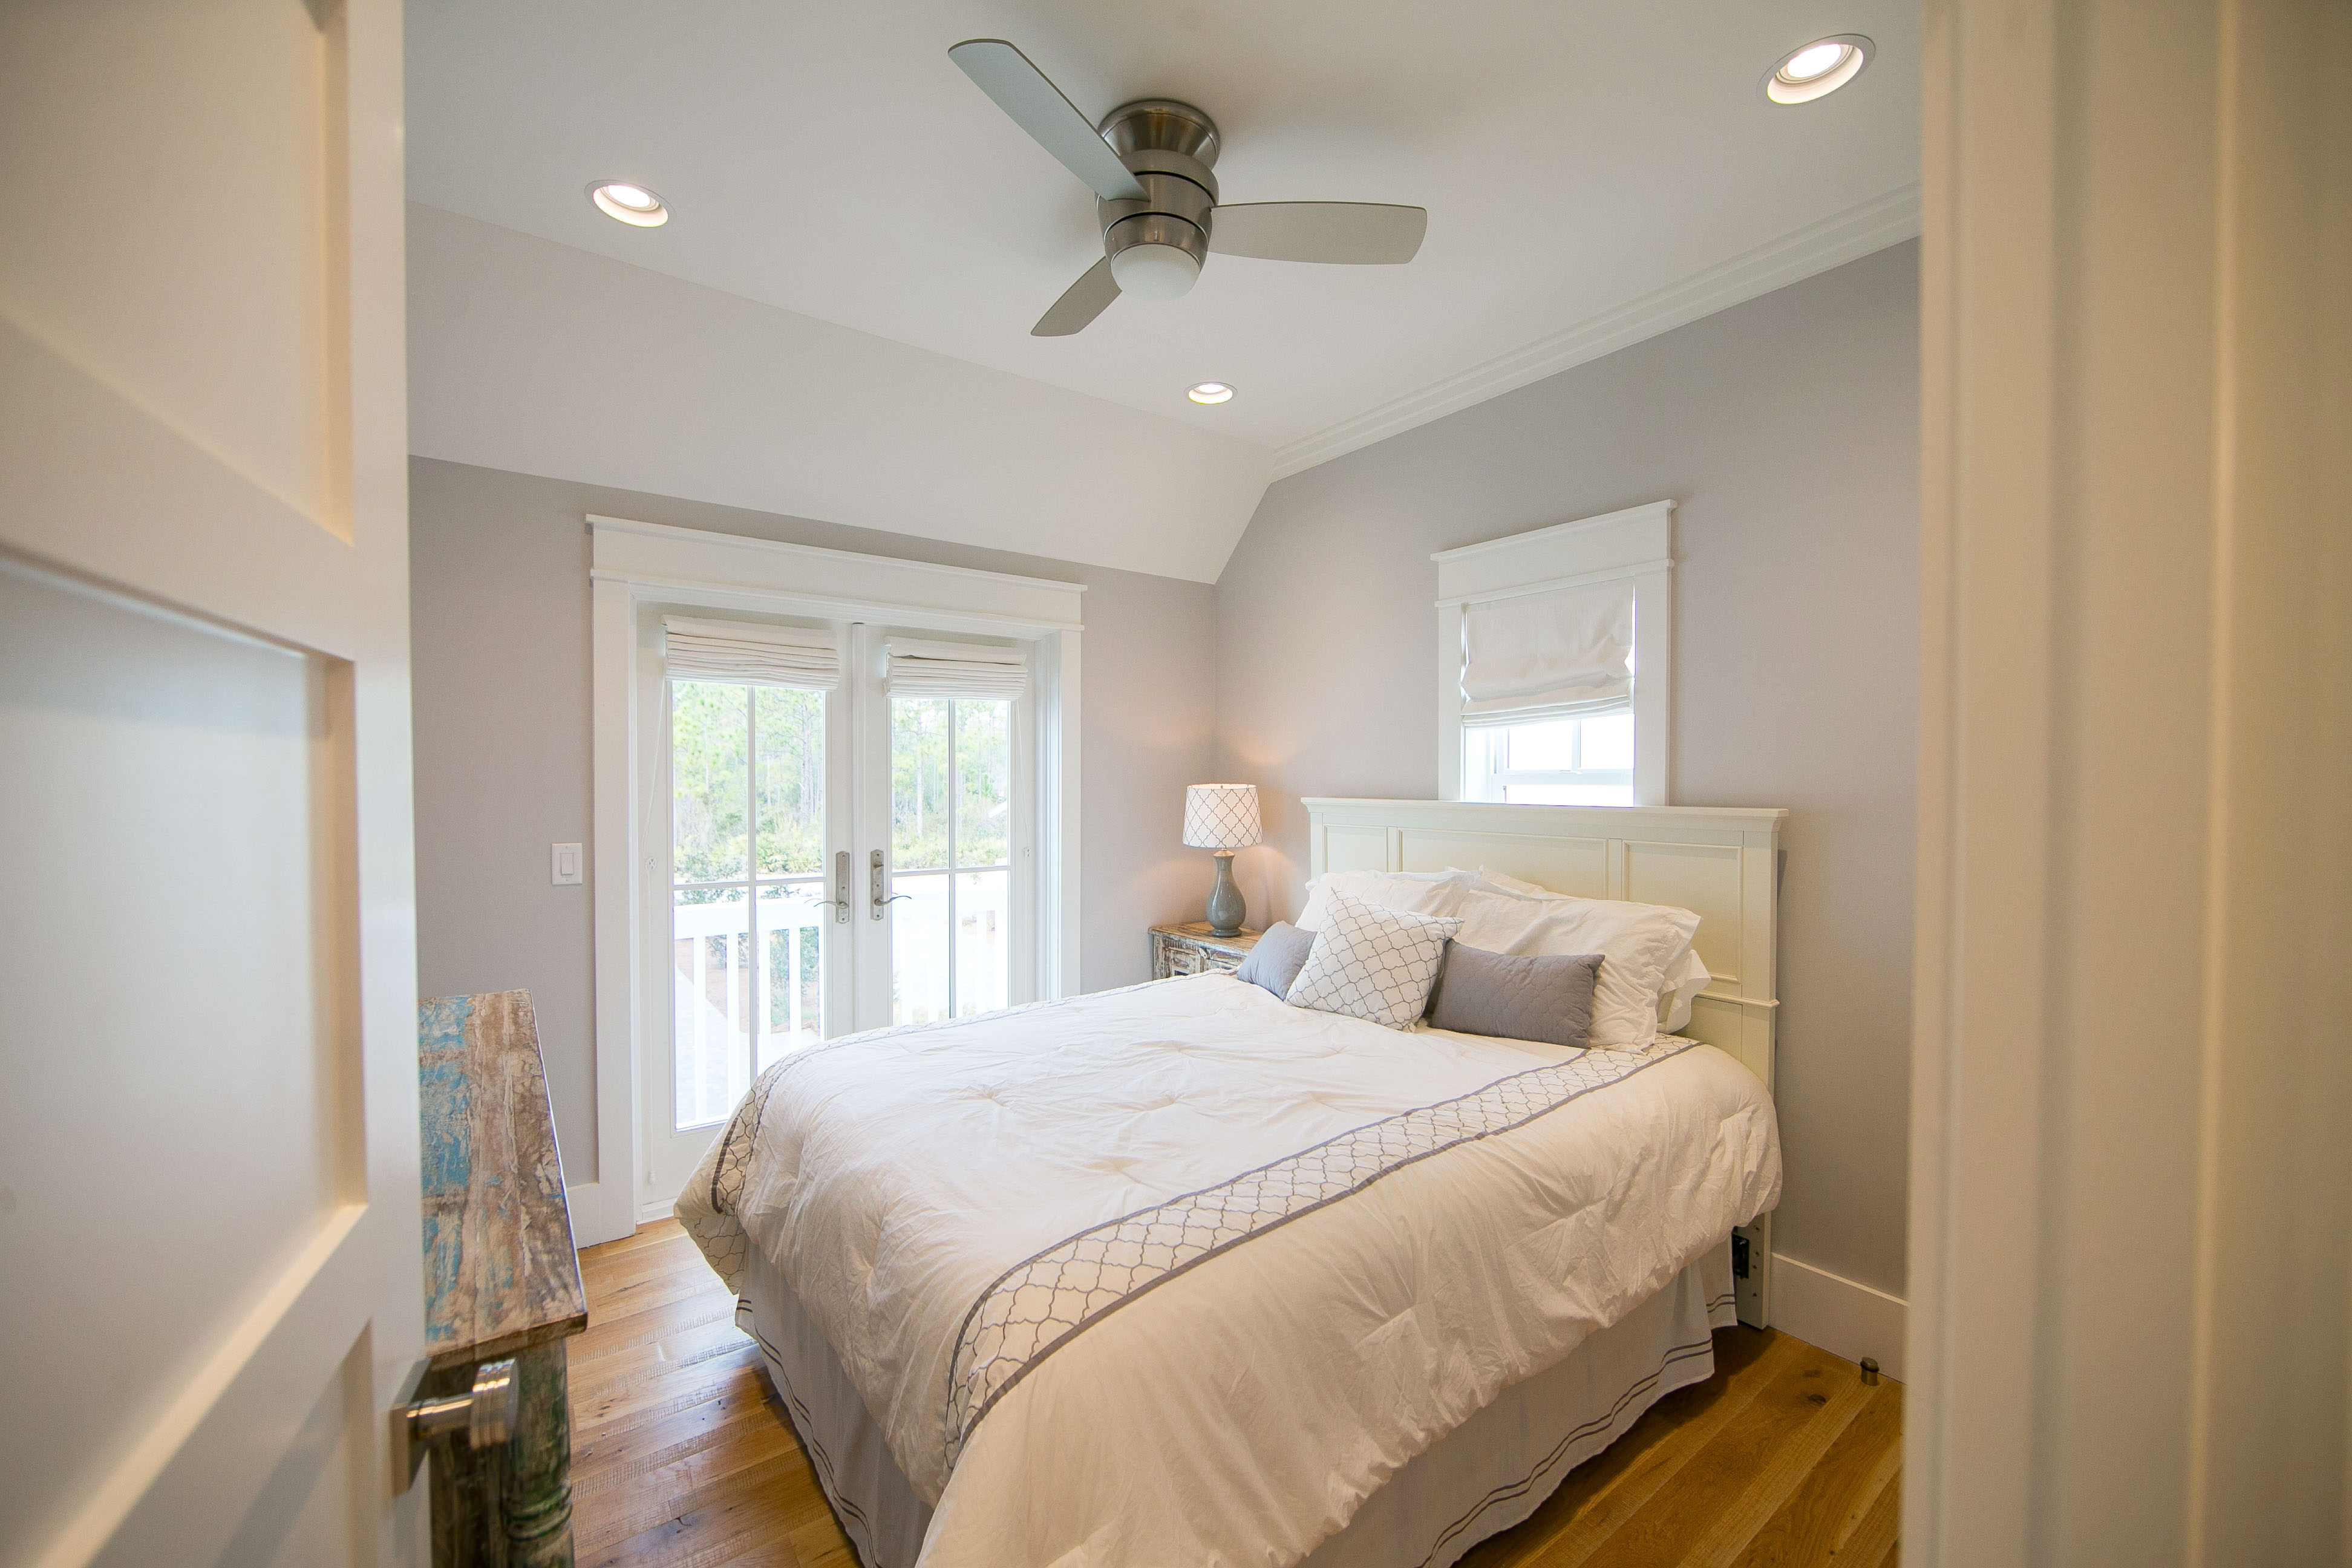 The carriage house bedroom has a queen sized bed and views of the pool.